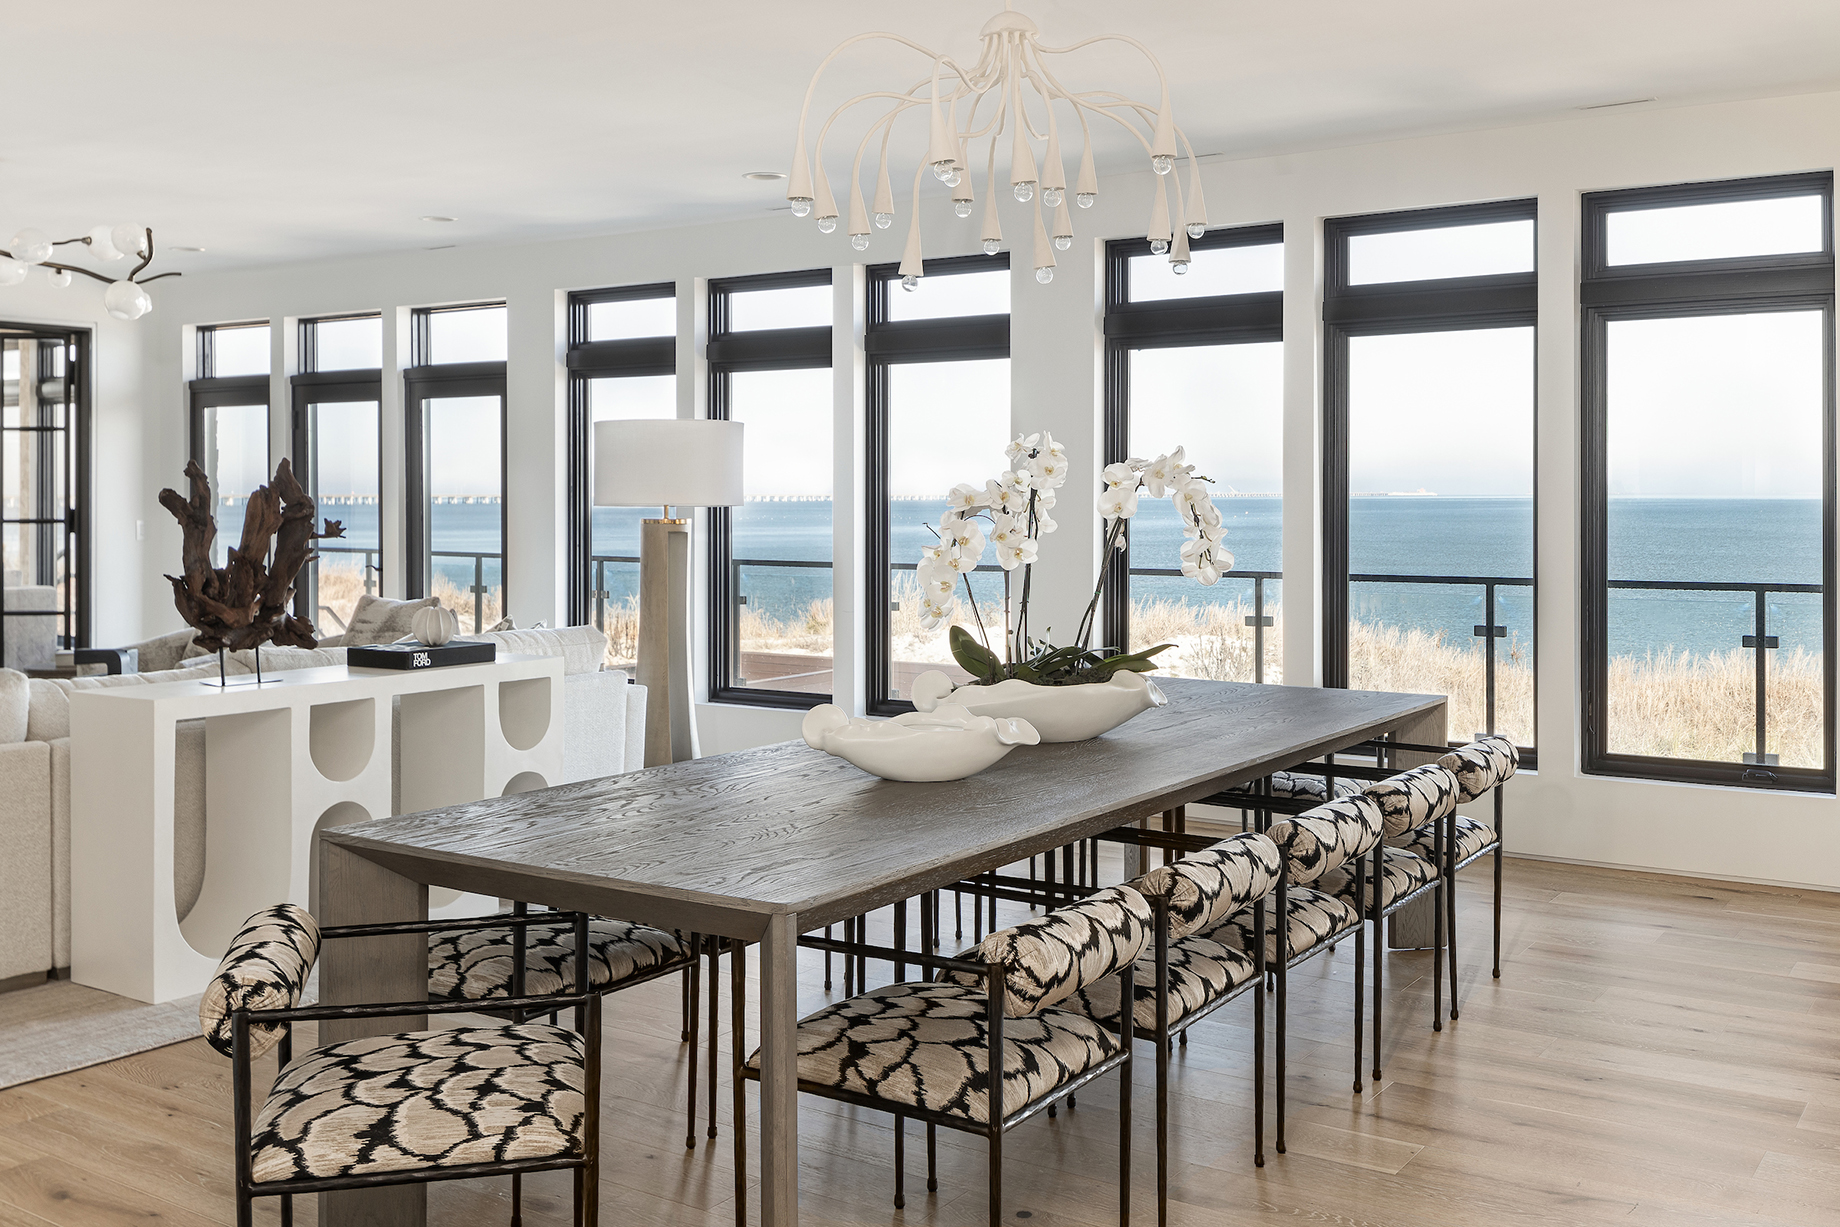 Open dining room with oceanside view in Virginia Beach home.